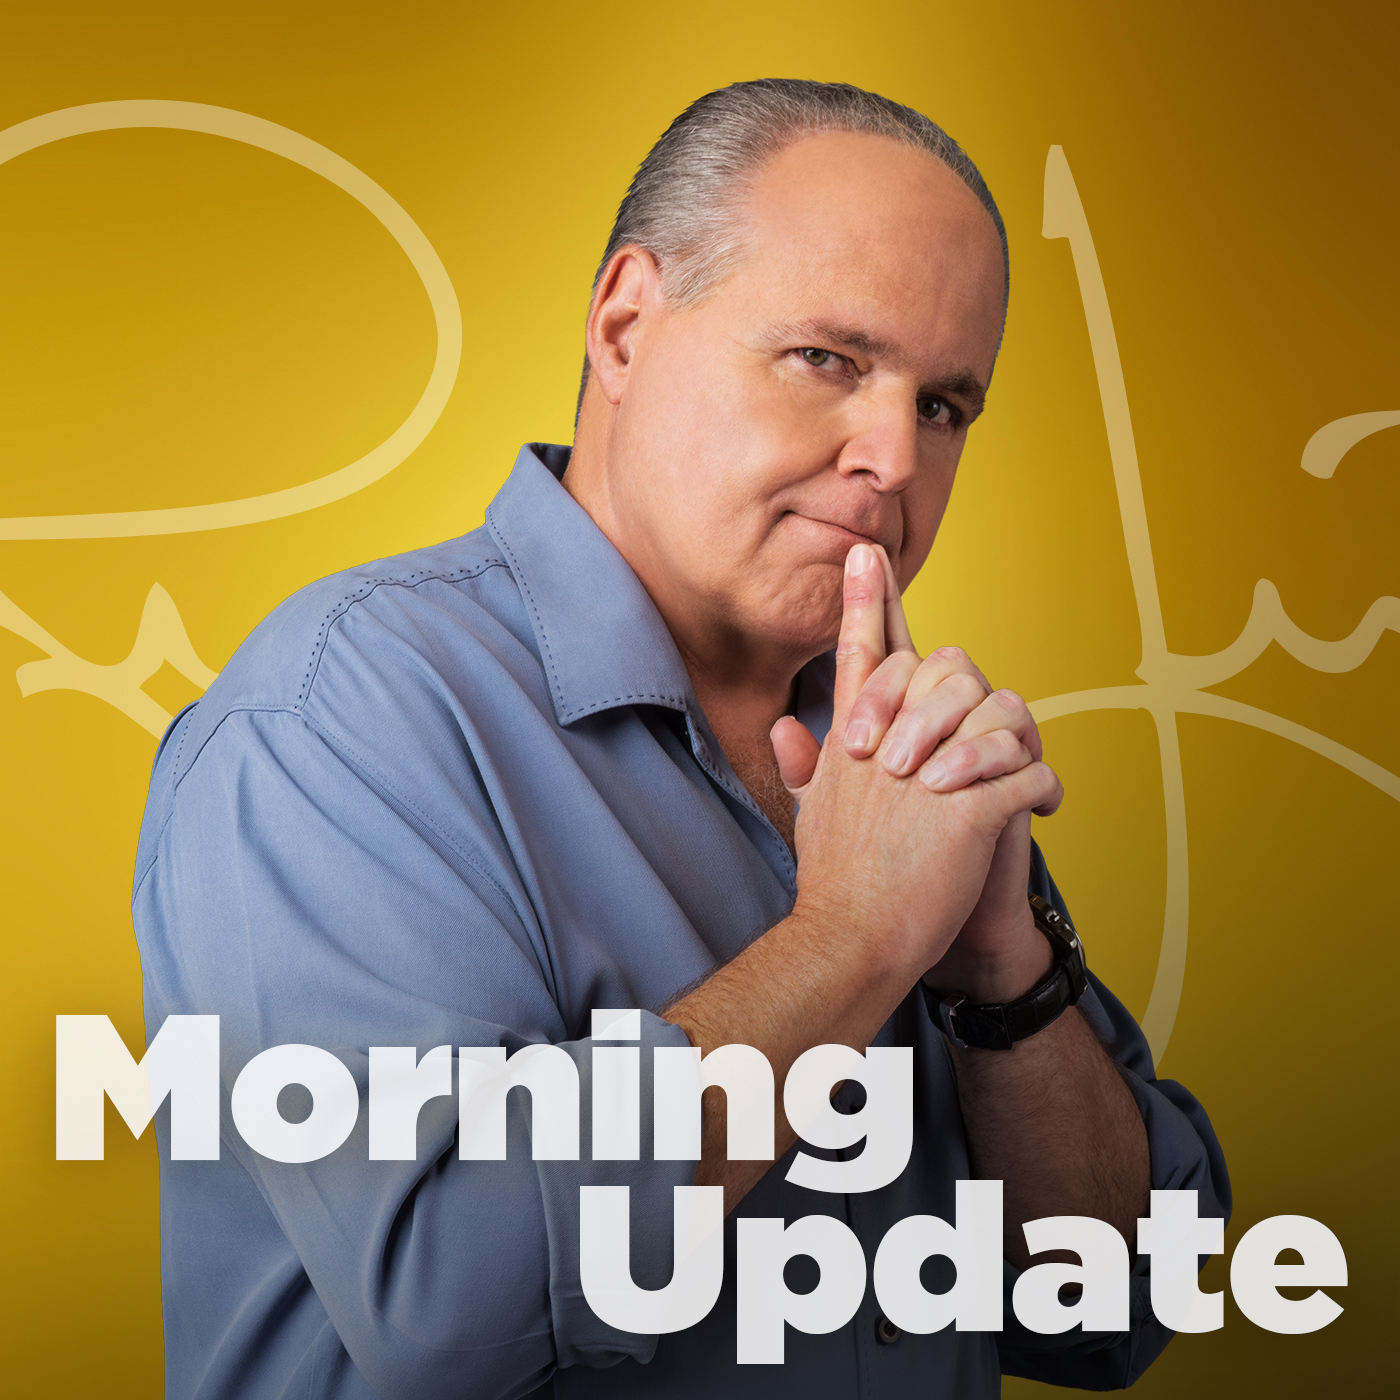 Rush Limbaugh Nov 22, 2019